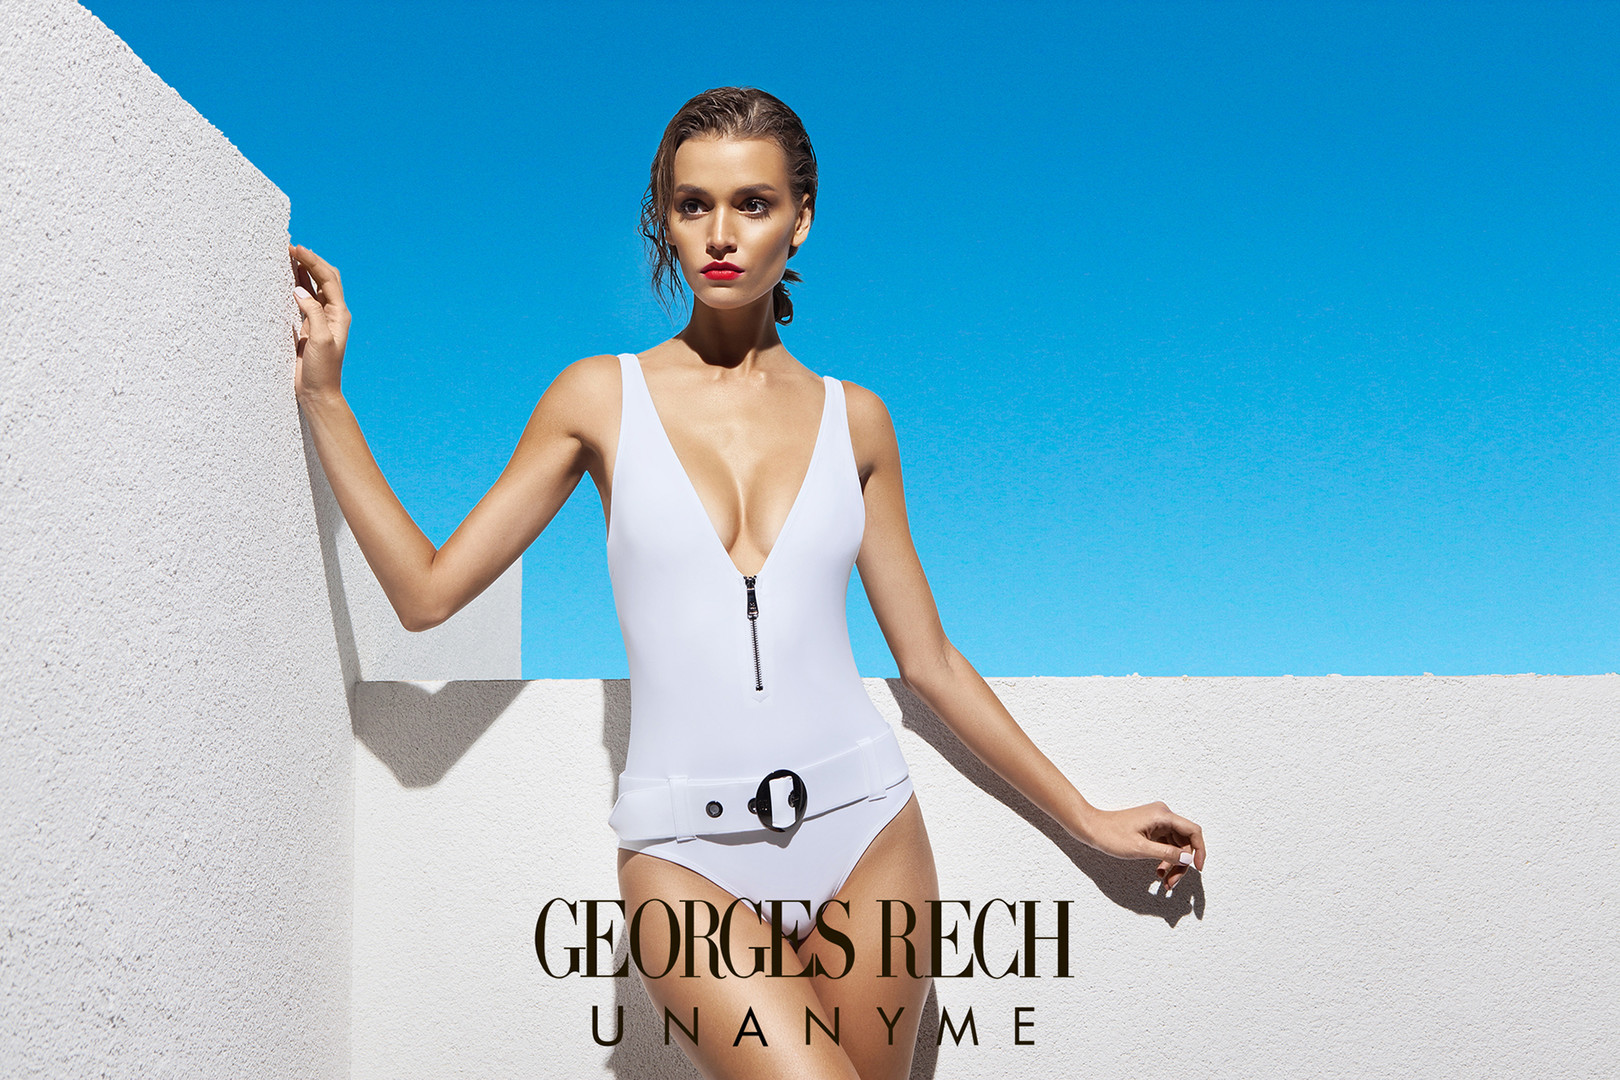 unanyme georges rech swimwear summer 2016 campaign. Black Bedroom Furniture Sets. Home Design Ideas